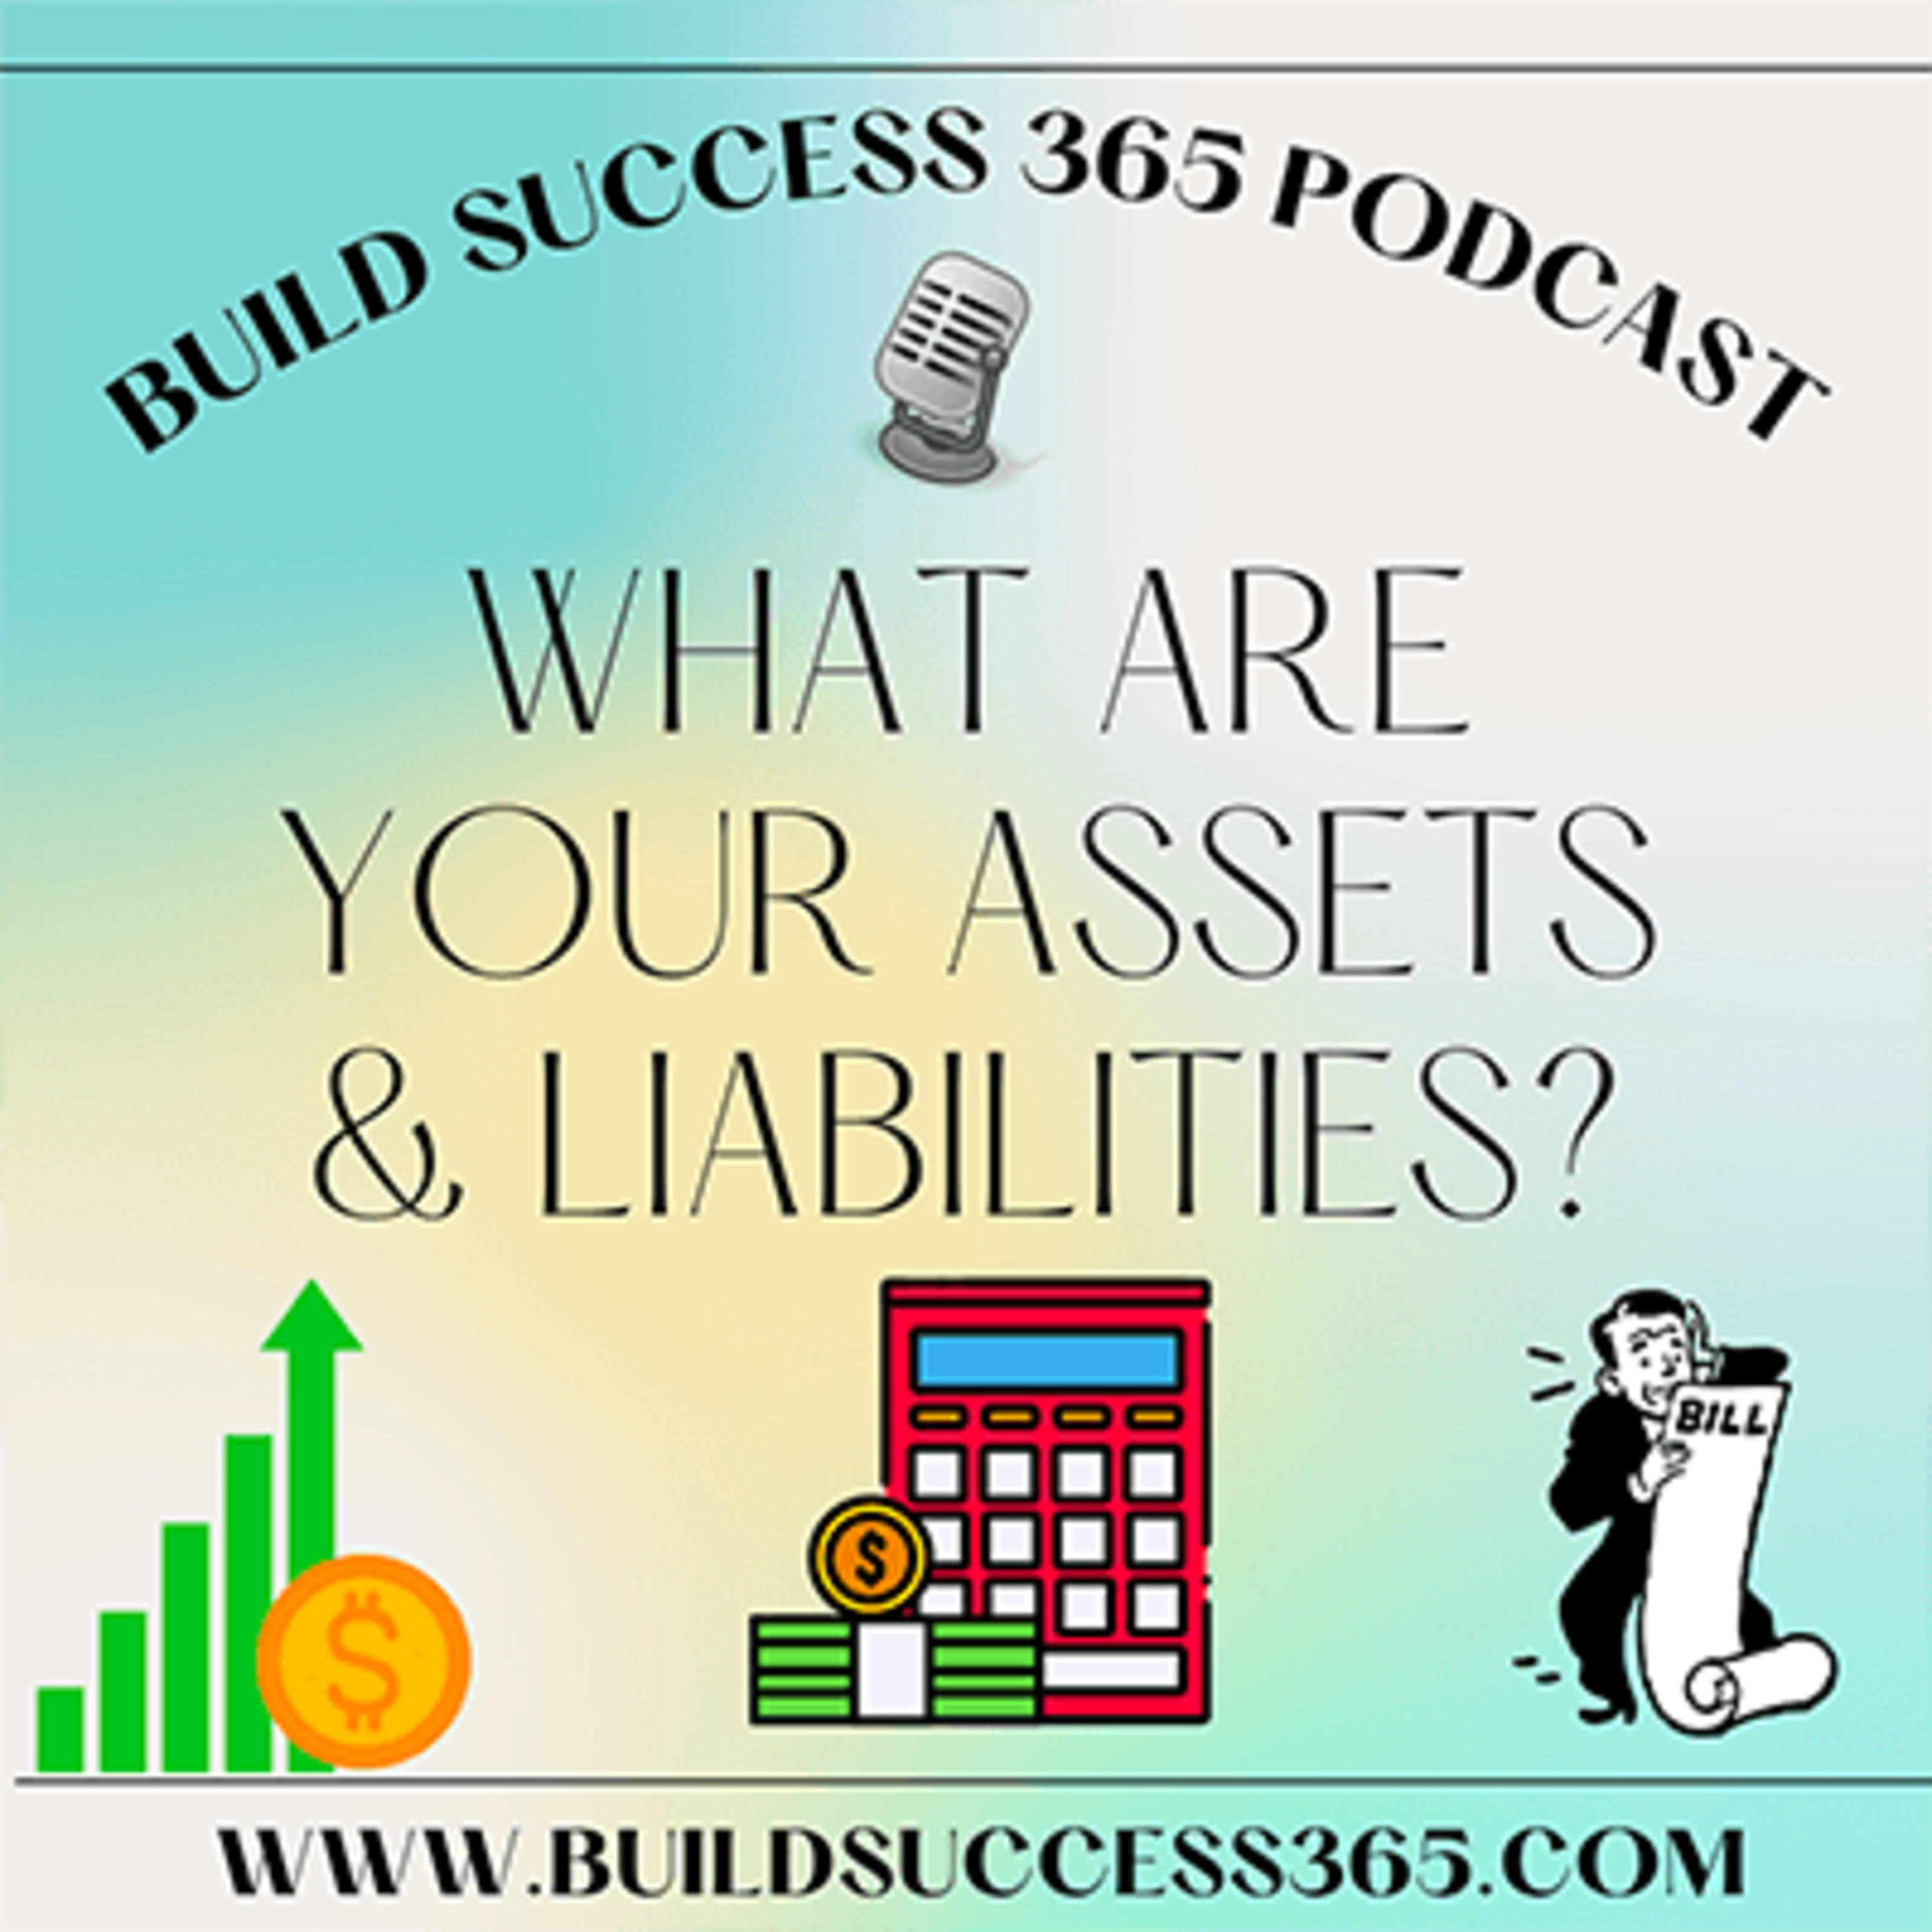 What Are Your Assets & Liabilities?